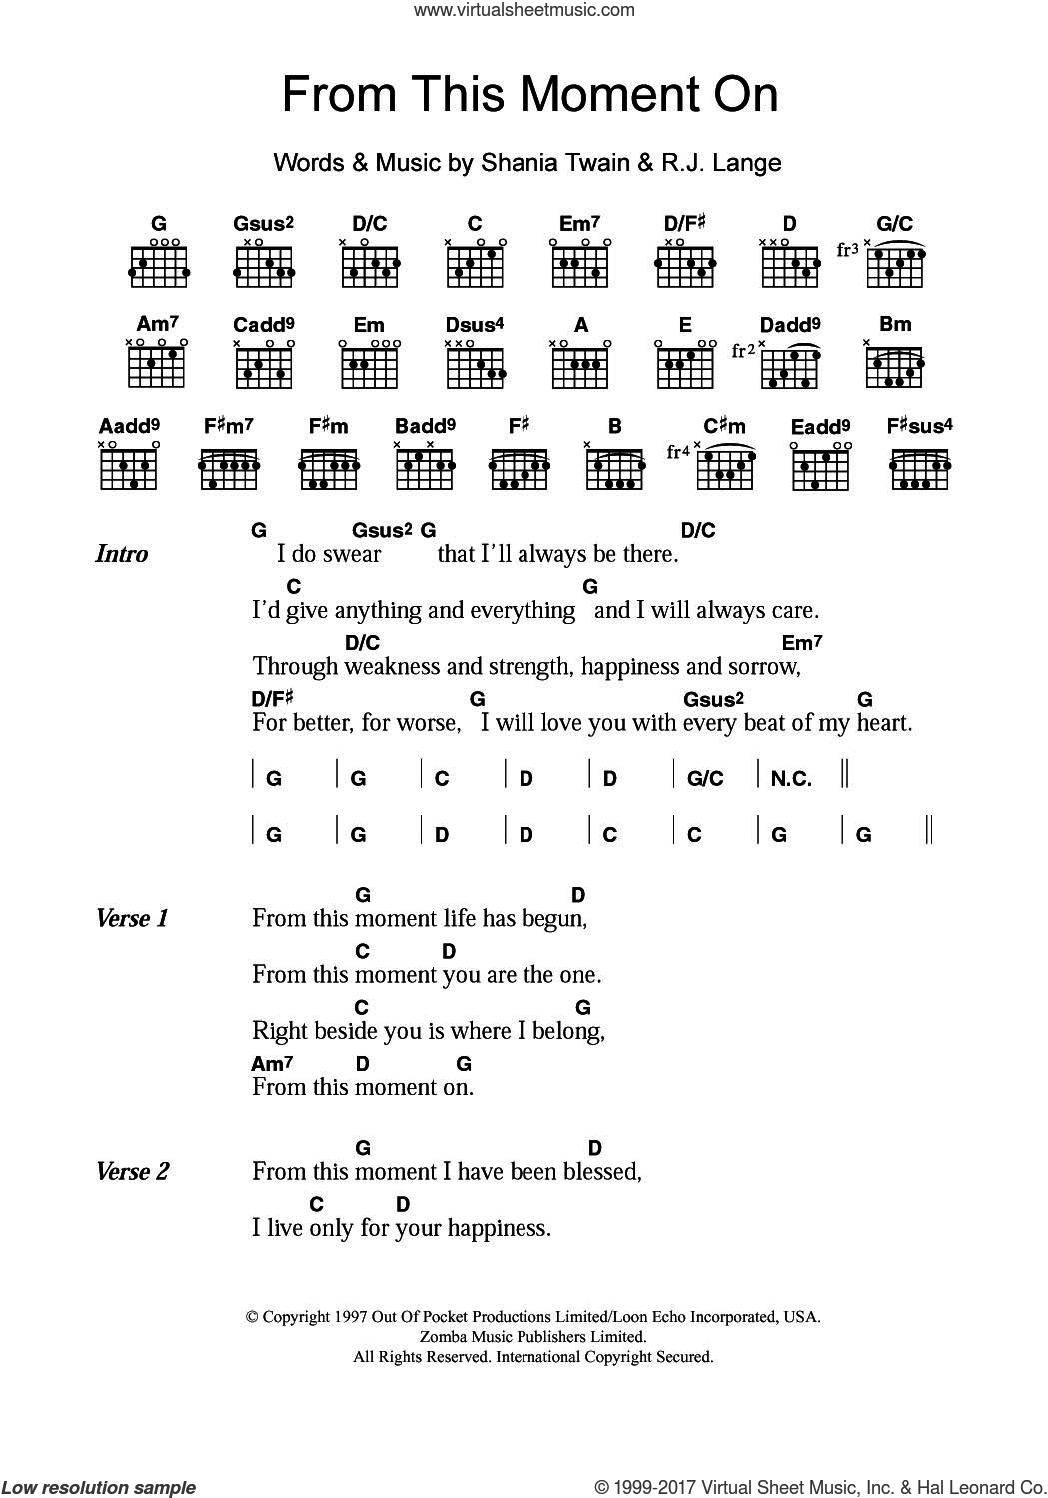 From This Moment On sheet music for guitar (chords) by Shania Twain and Robert John Lange, intermediate skill level